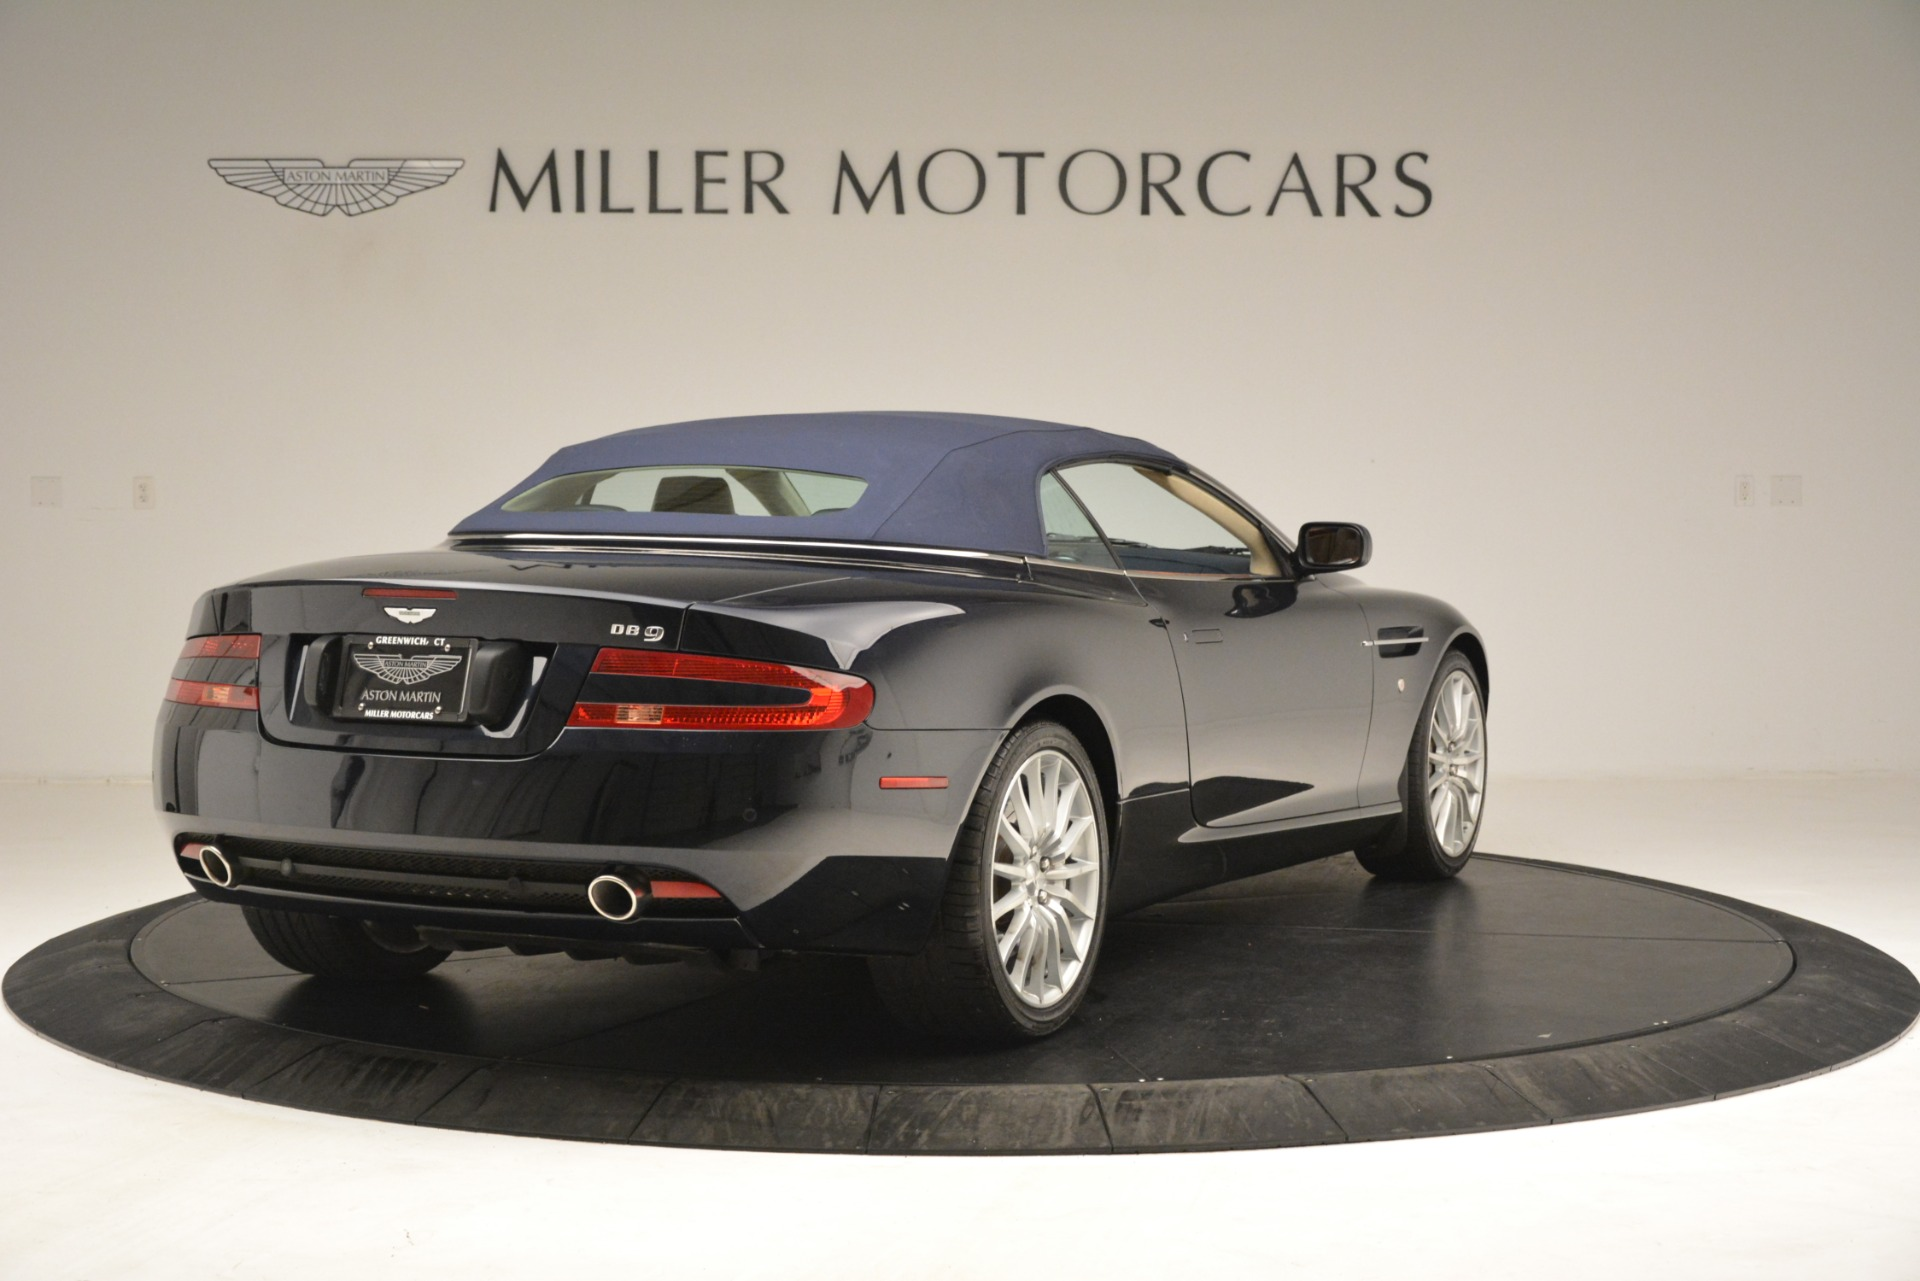 Used 2007 Aston Martin DB9 Convertible For Sale In Westport, CT 3291_p28